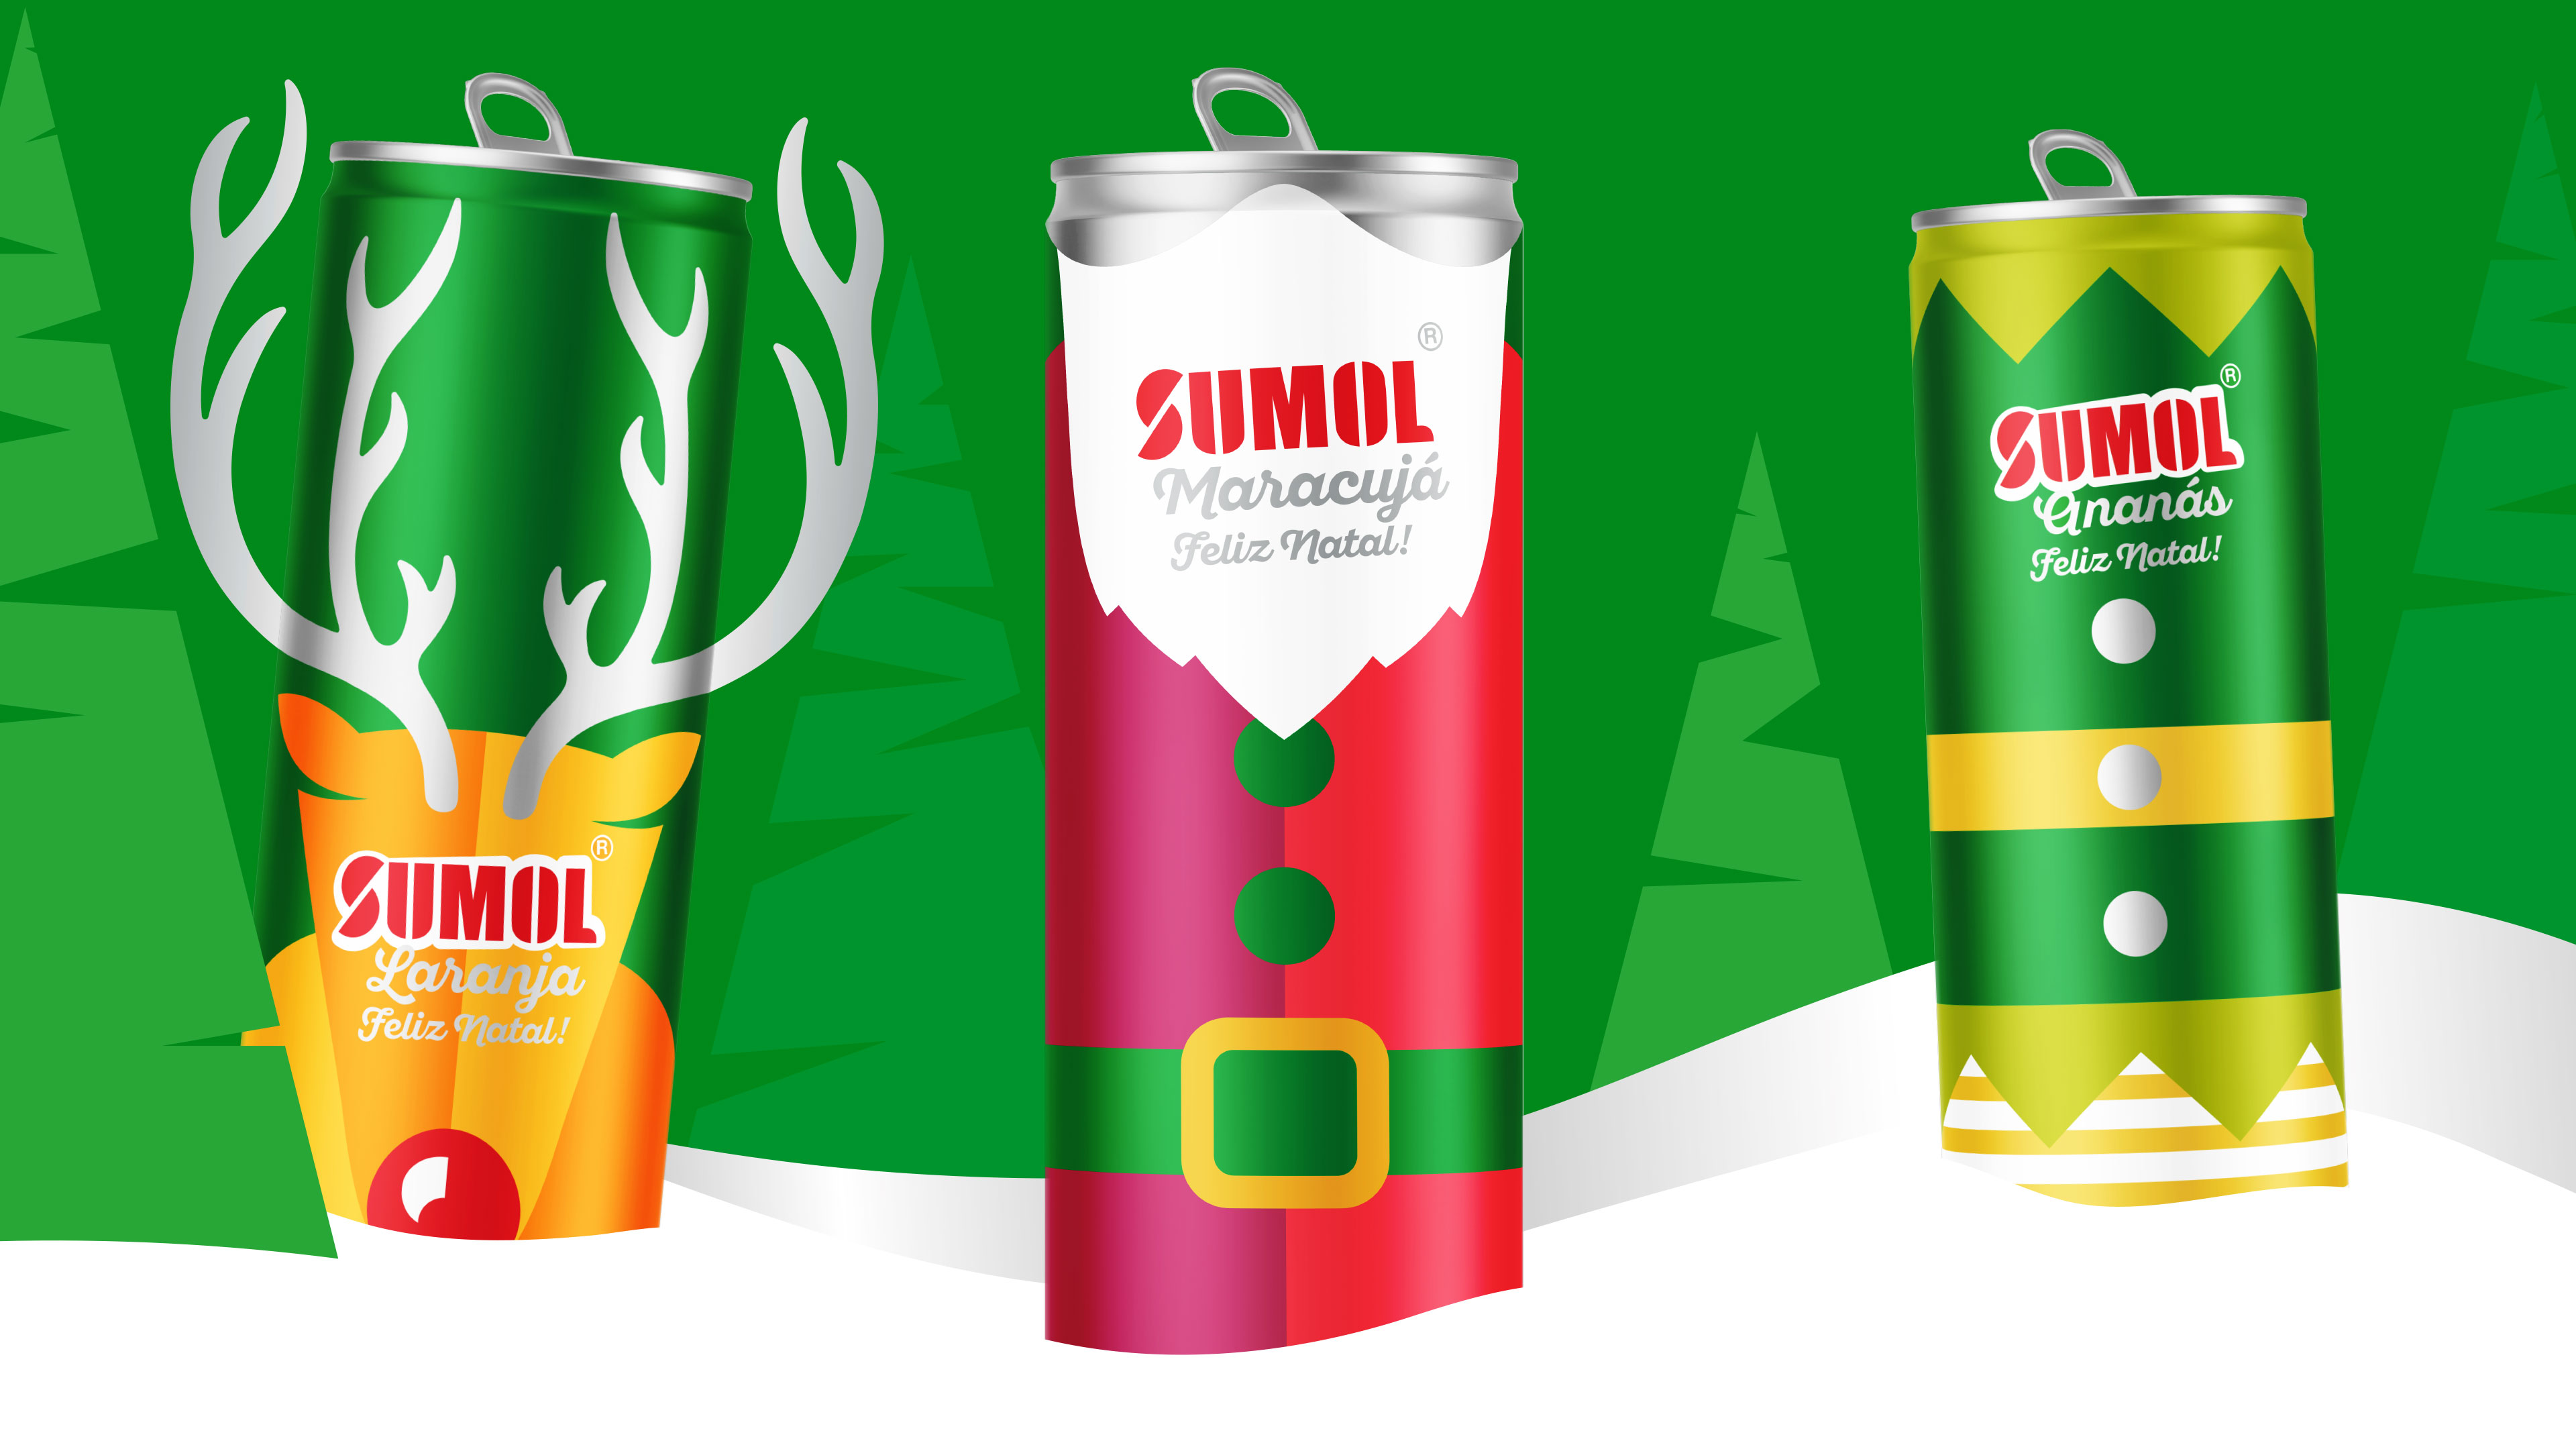 Sumol Dressed Up For Christmas - BrandMe